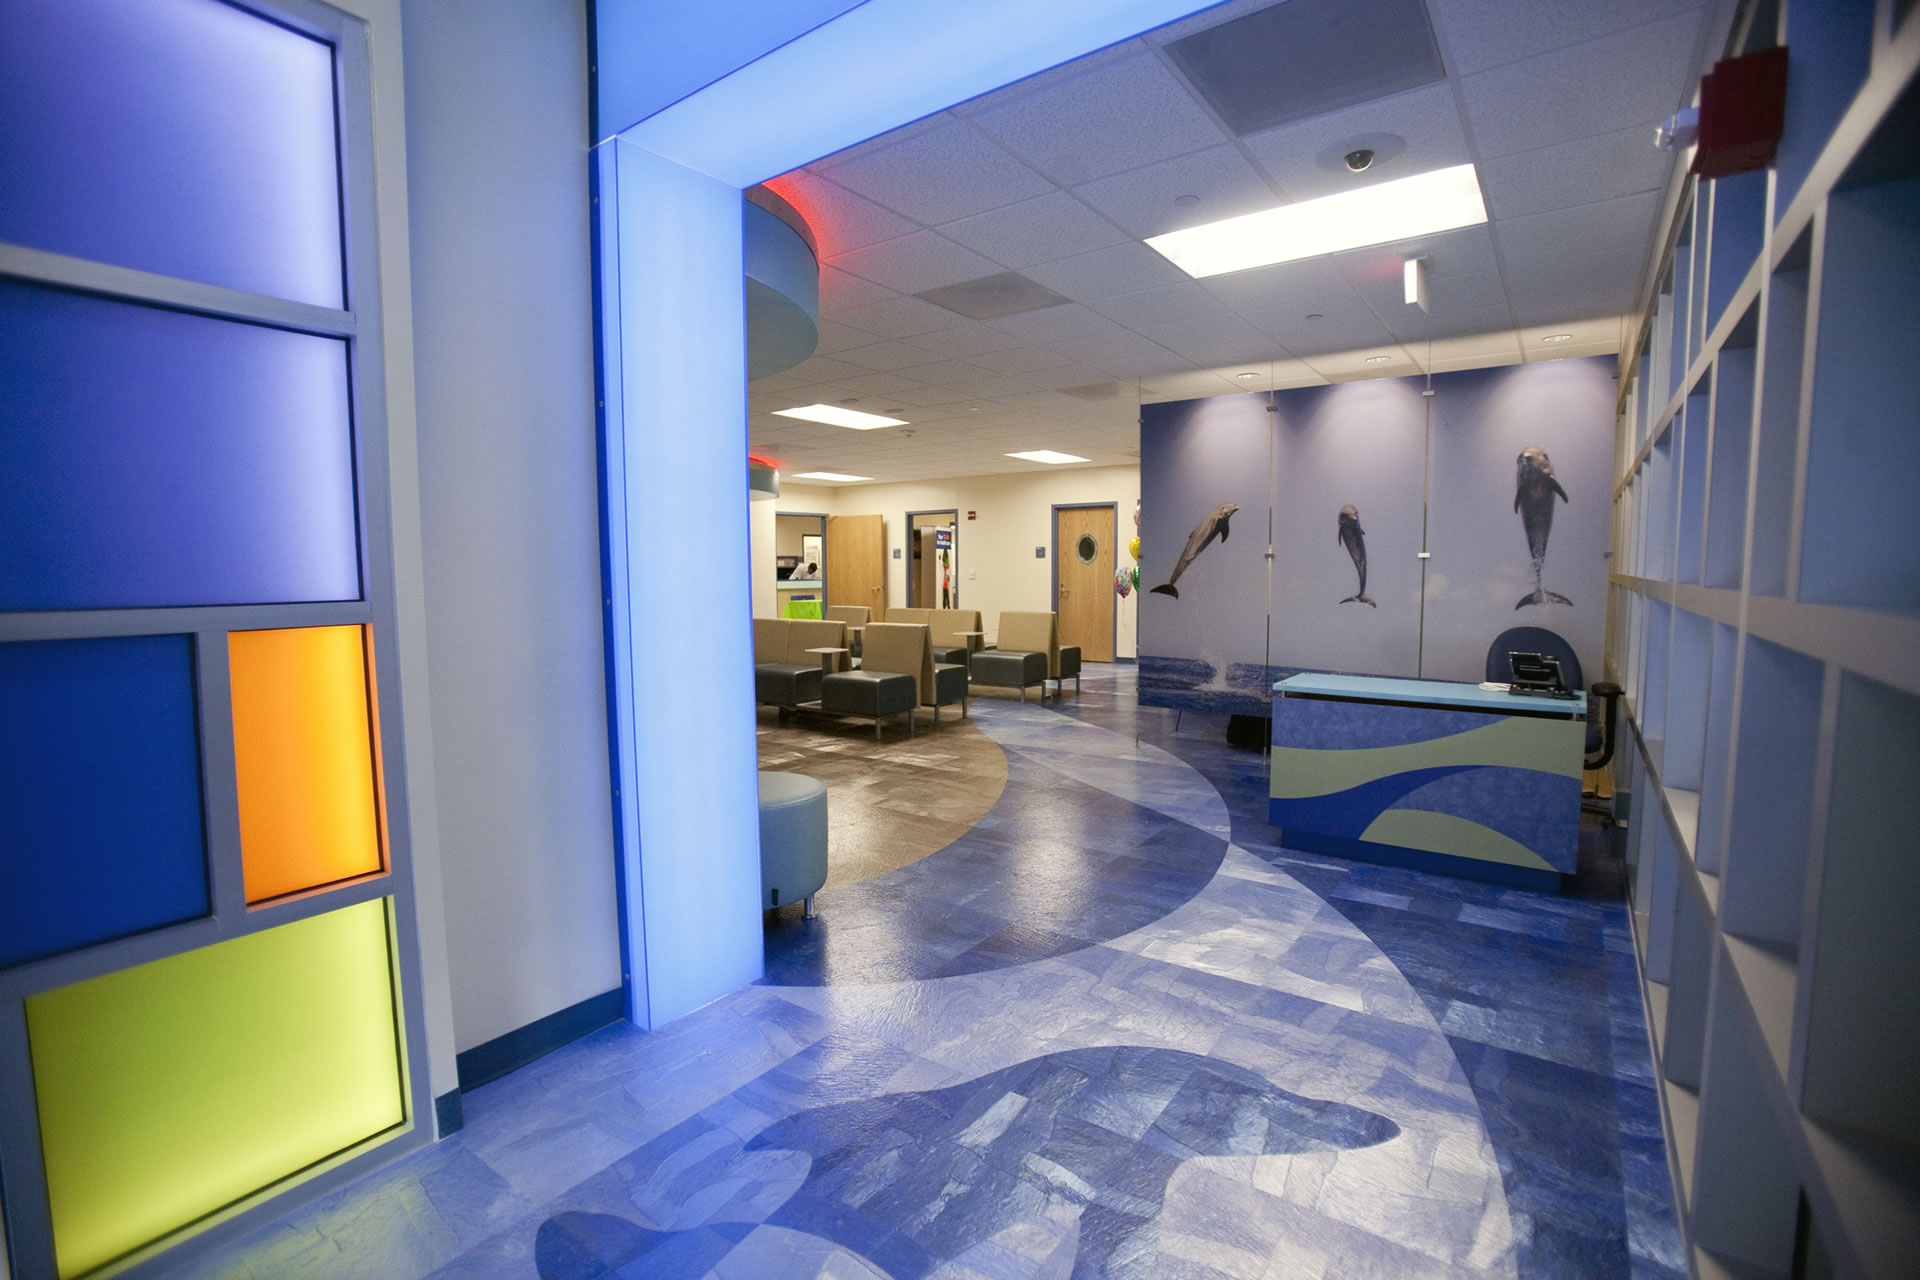 State Of The Art Pediatric Emergency Room 187 Pediatric